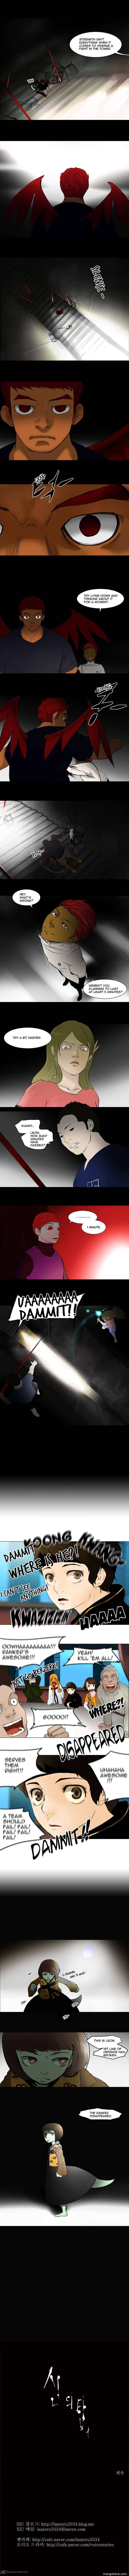 Tower of God 38 Page 4